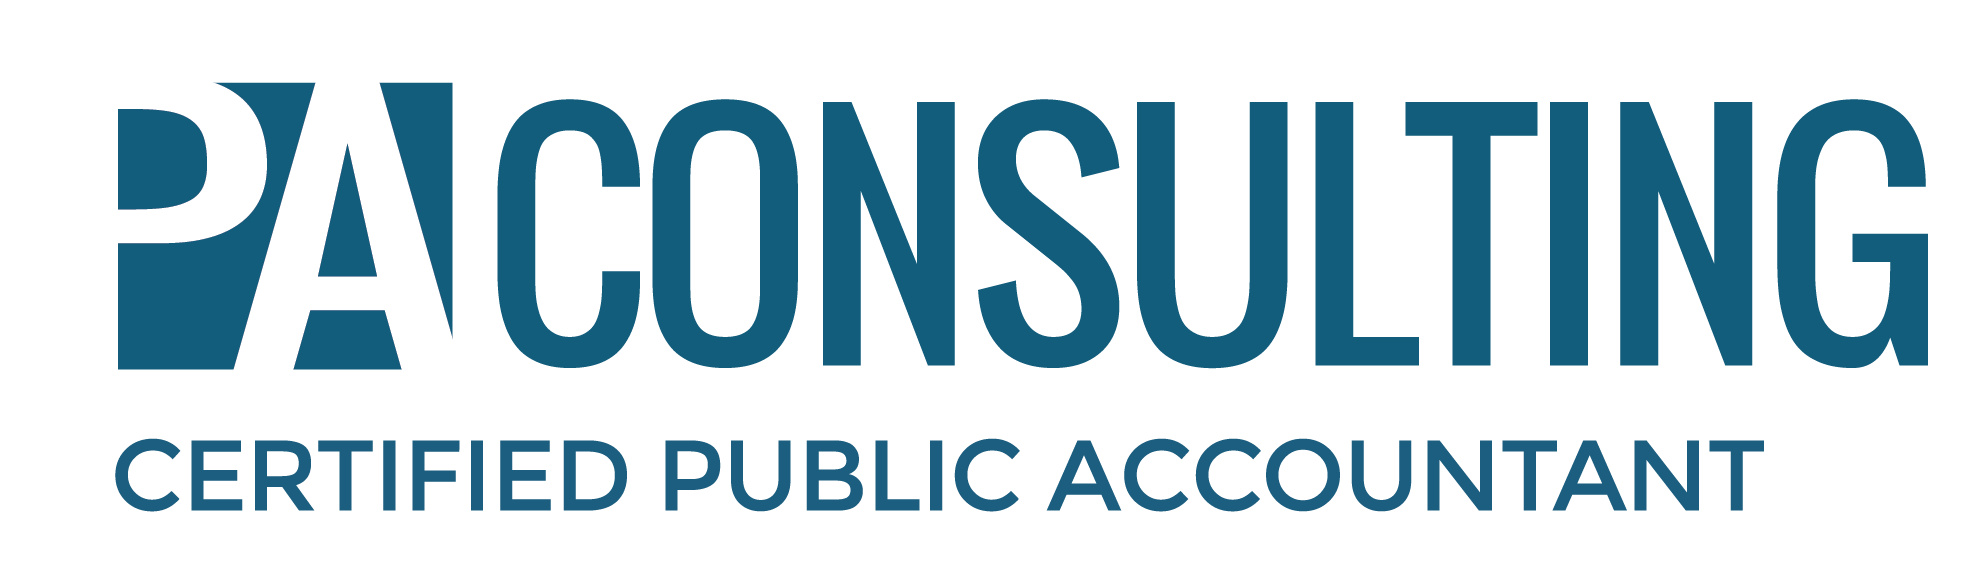 PAConsulting-LOGO-01.png